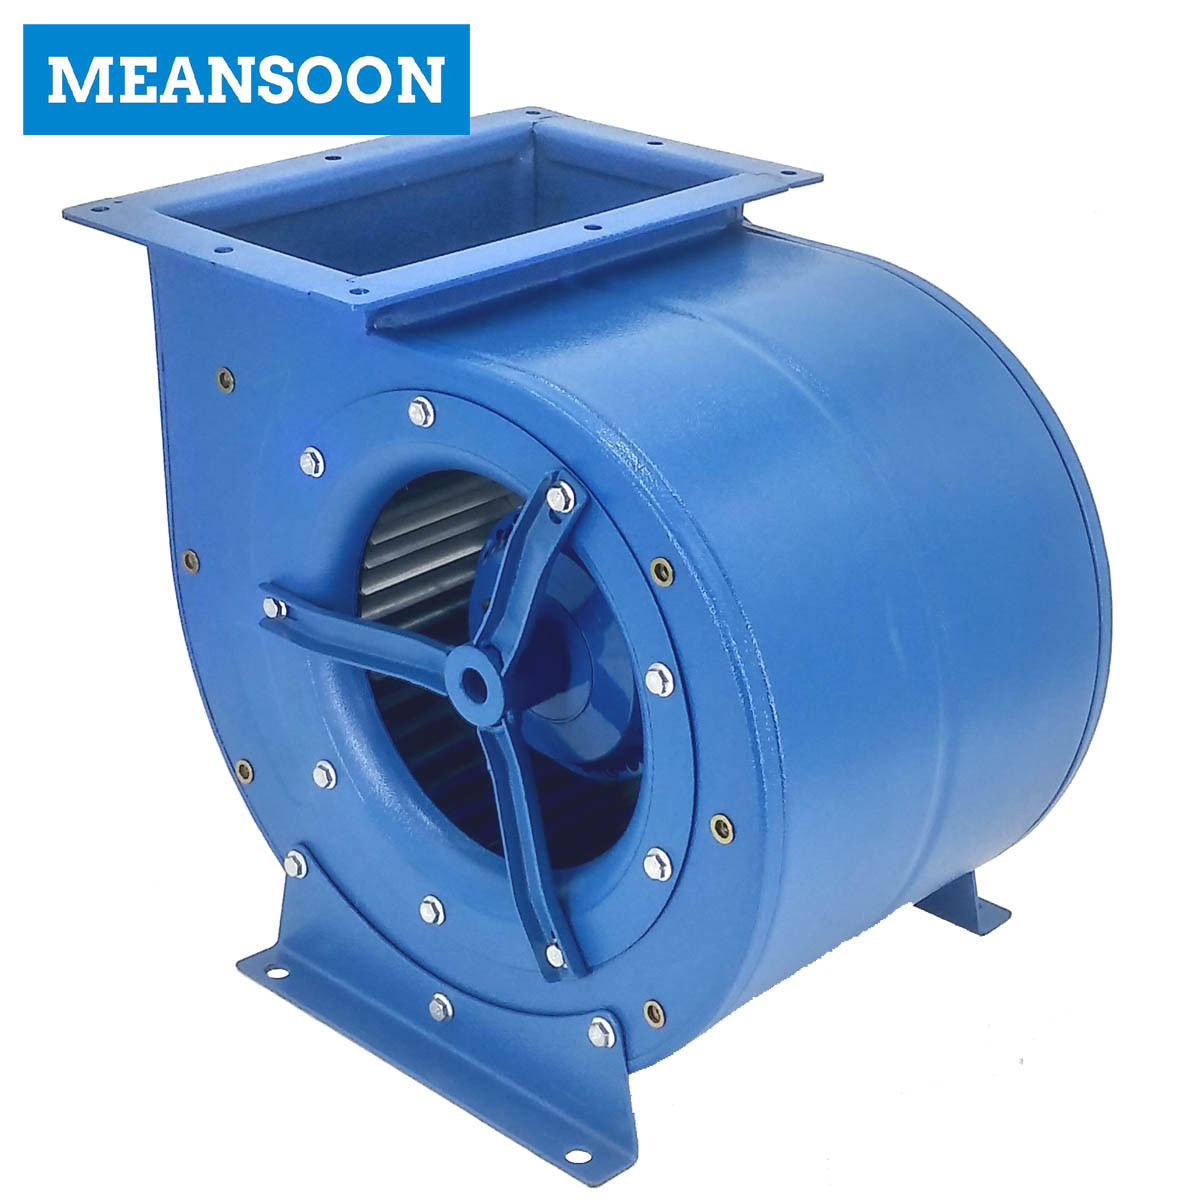 400 Dual Inlet Forward Declined Radial Fan for Ventilation